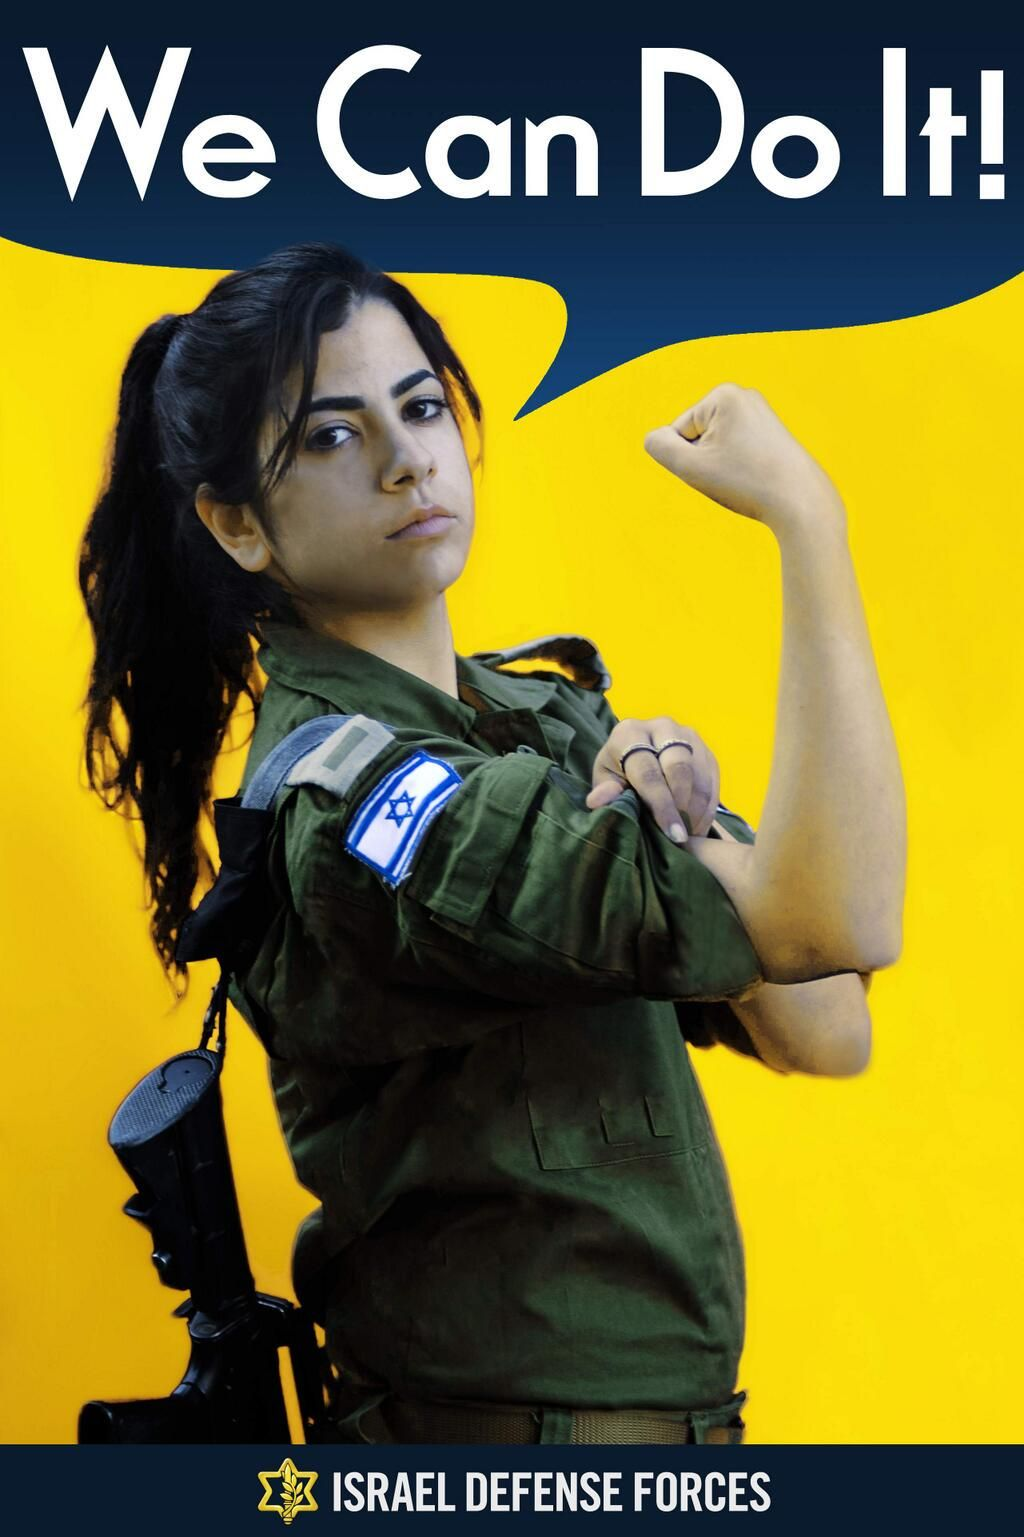 women of the idf: idf gals ready to kick some arab butt | holy land